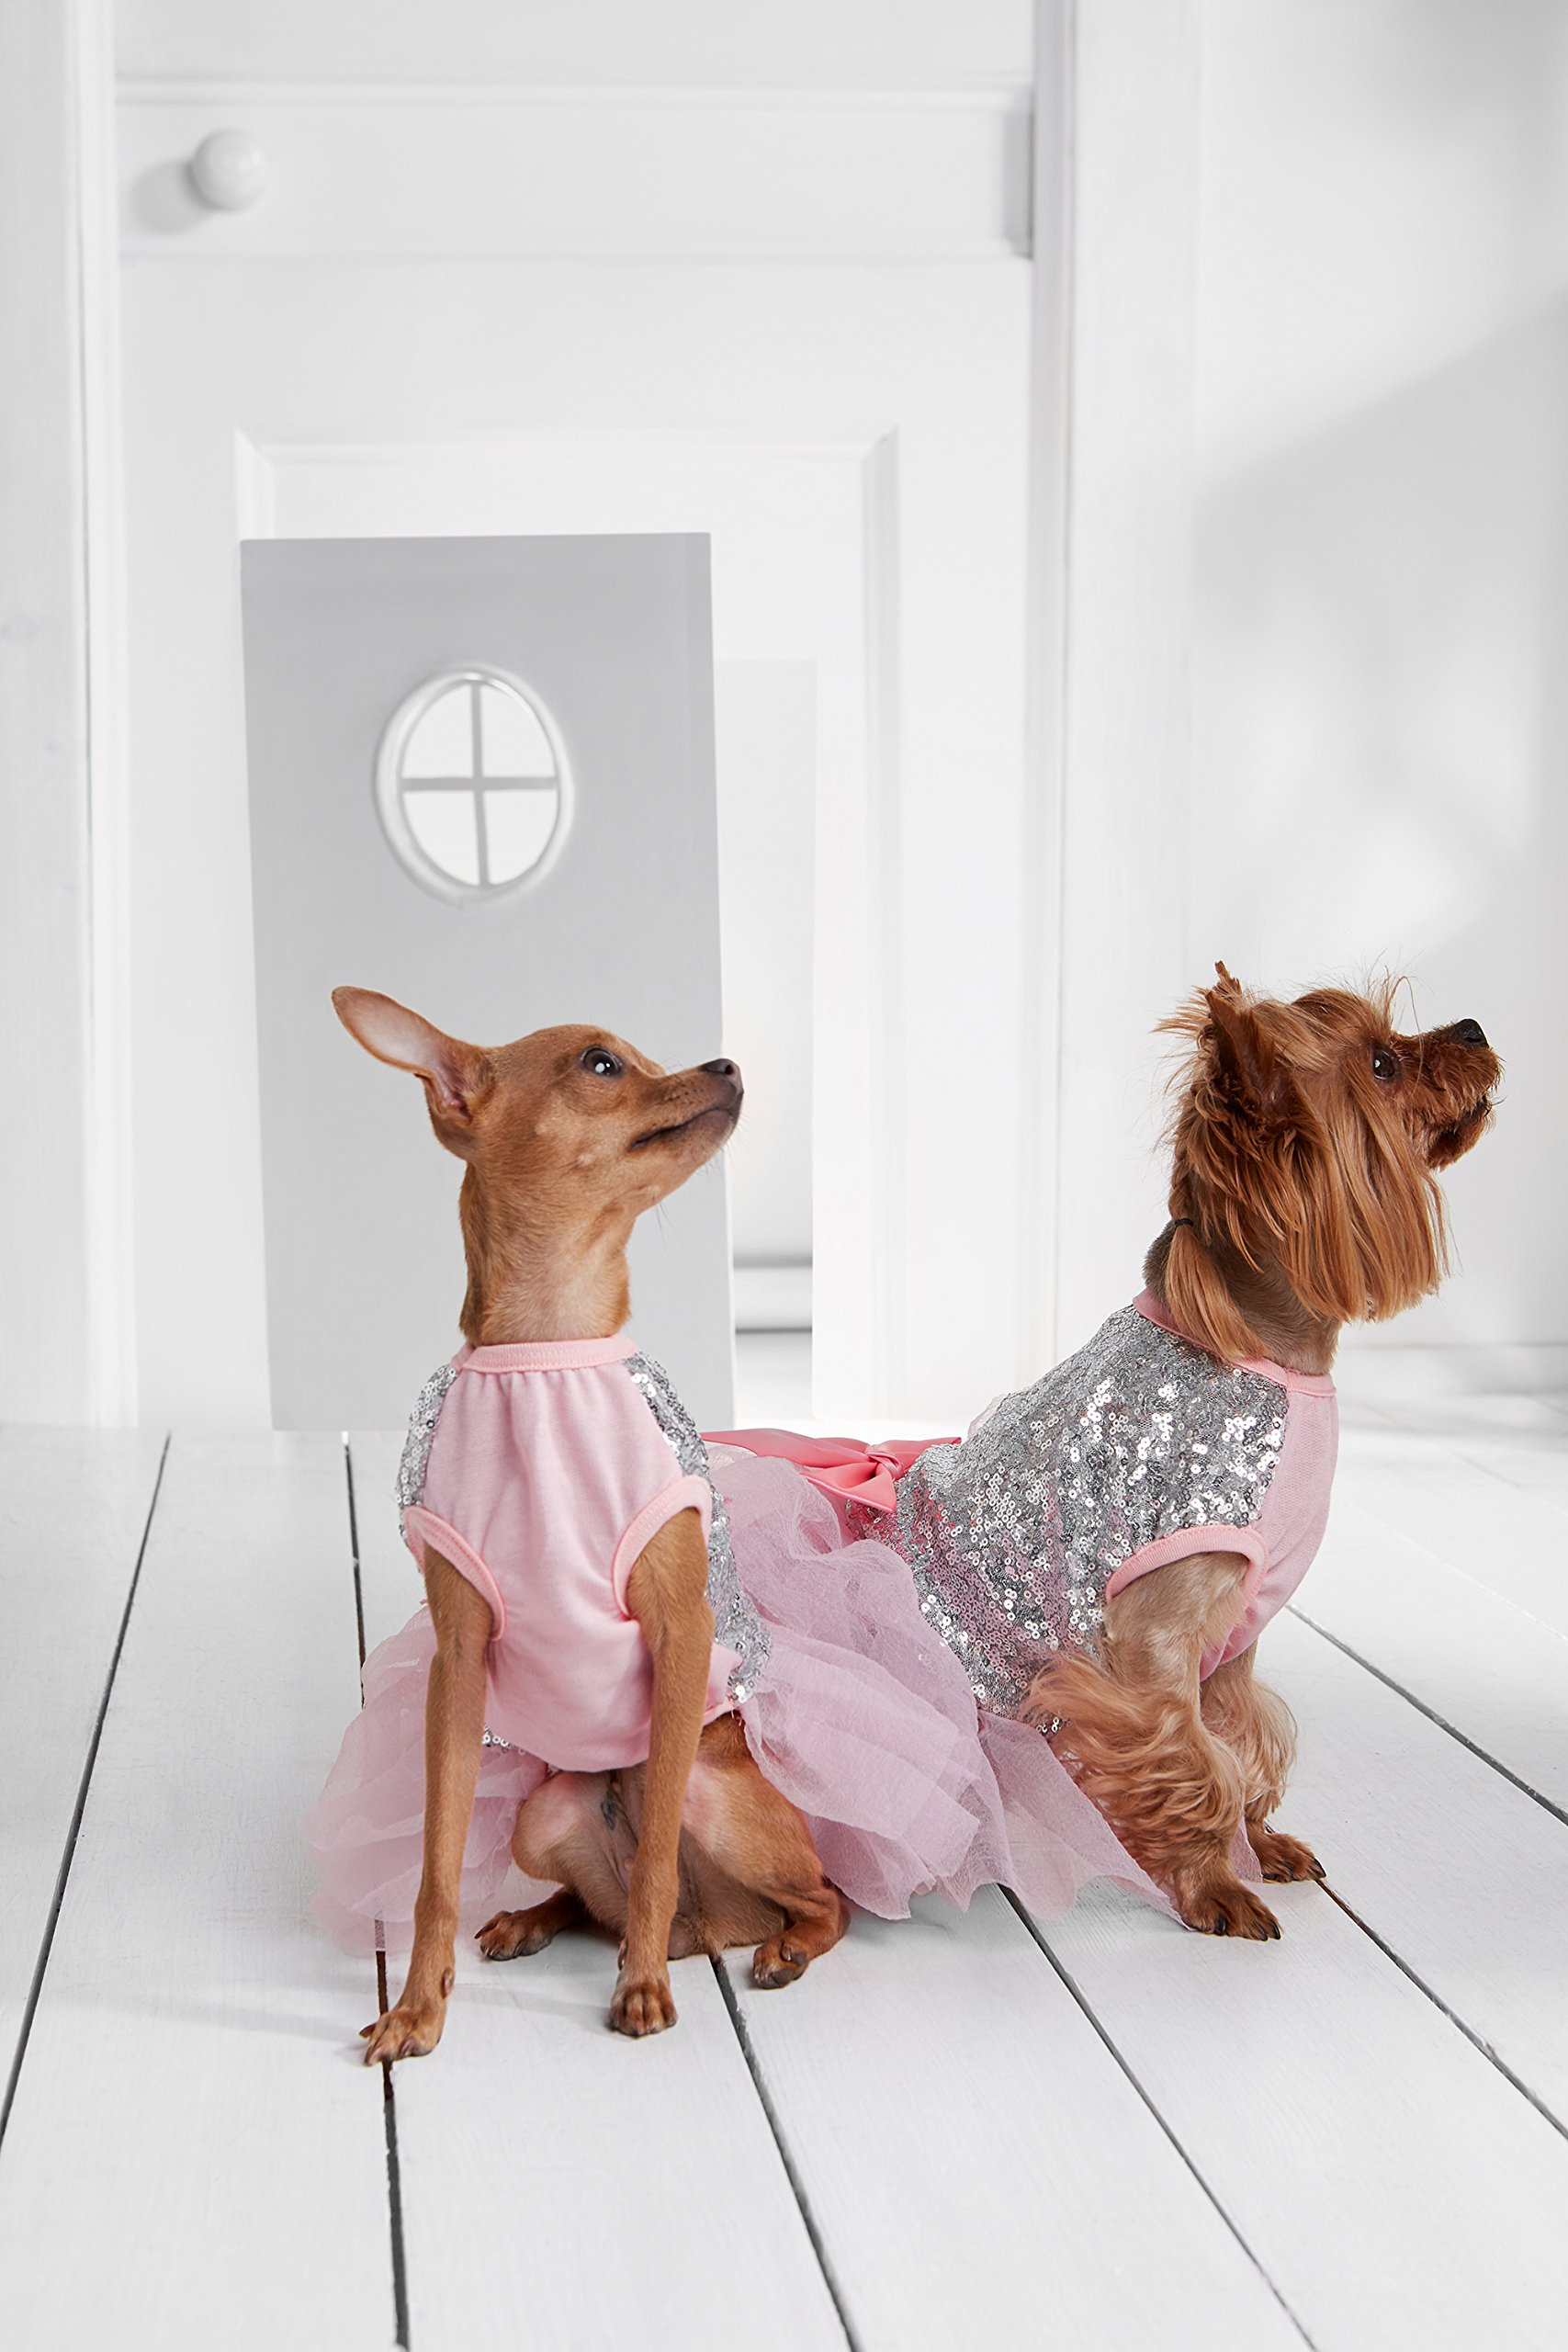 "Small Dog Tutu Dress With Sequins Satin Bow 3 Layer Skirt Bling Puppy Party Outfit (Toy Plus: 10"" / 5-9 lbs, Pink, Silver)"